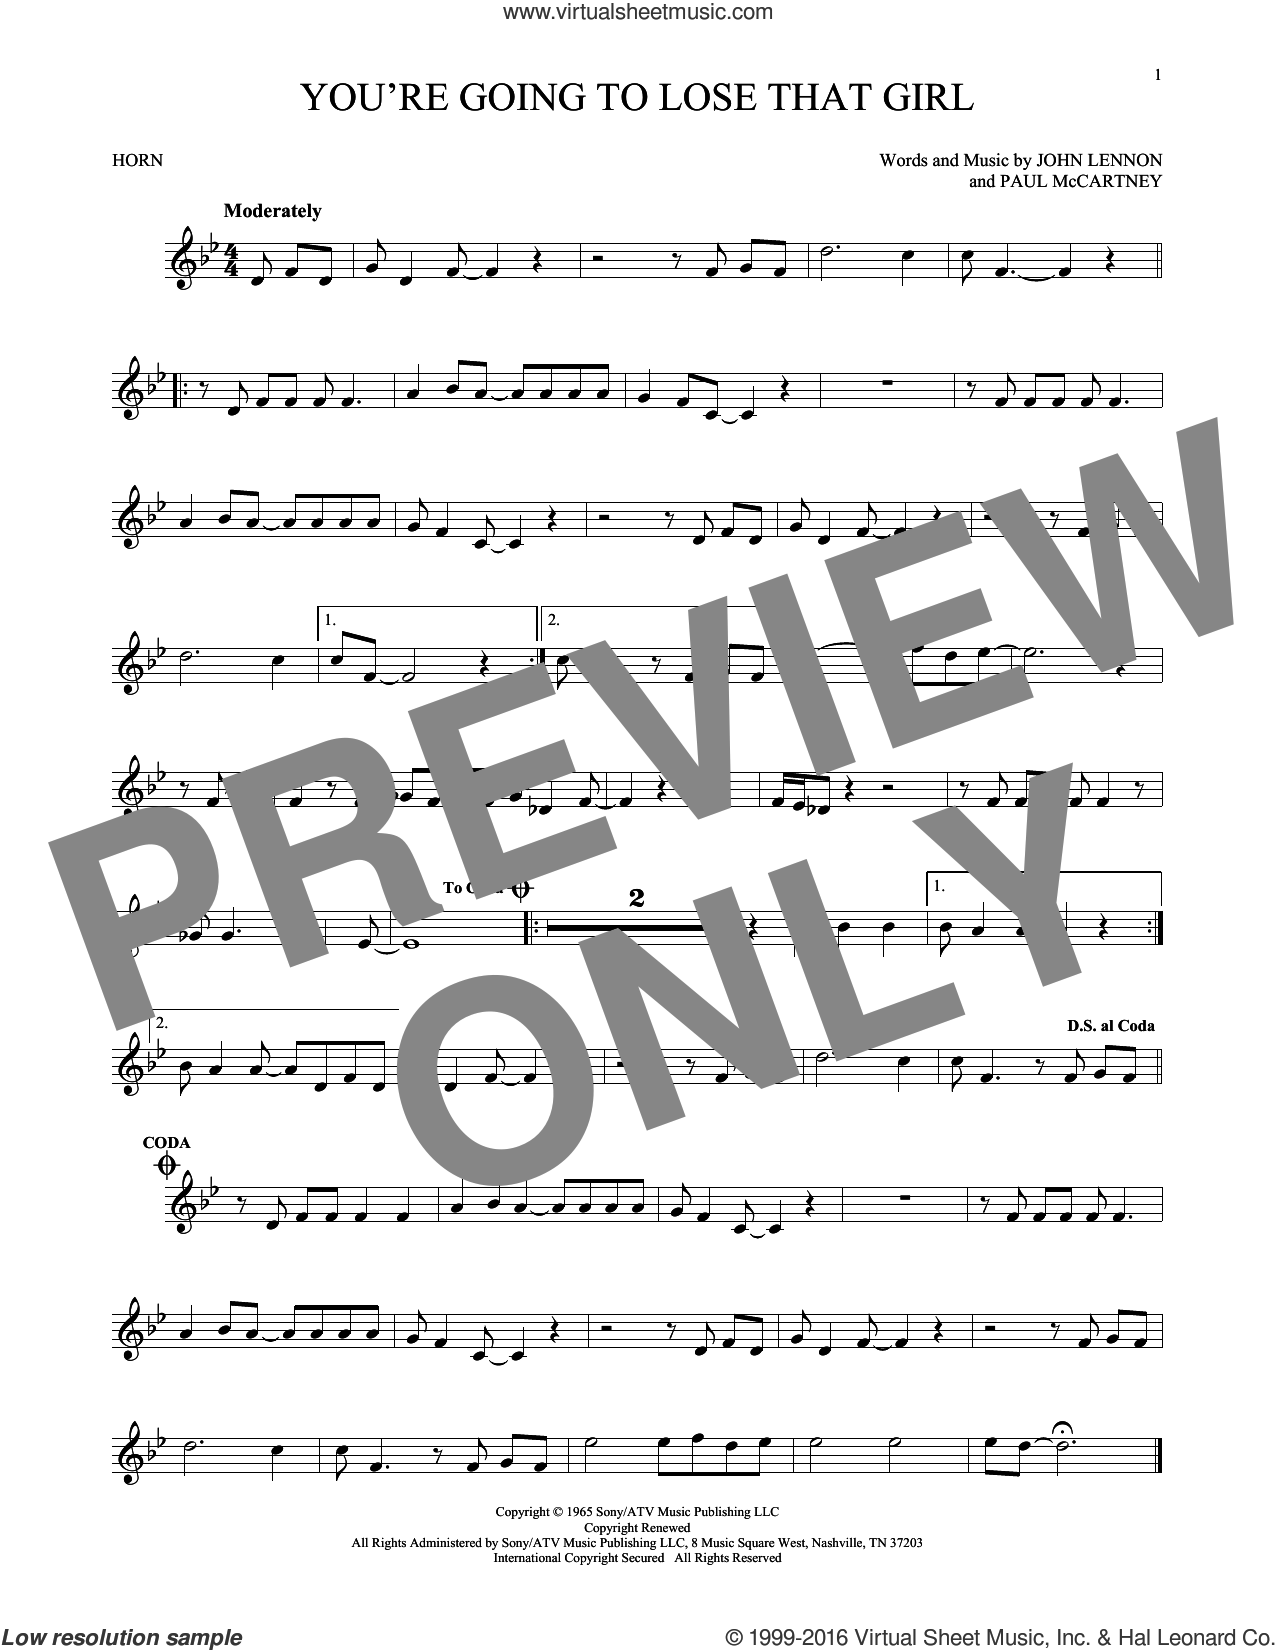 You're Going To Lose That Girl sheet music for horn solo by John Lennon and The Beatles. Score Image Preview.